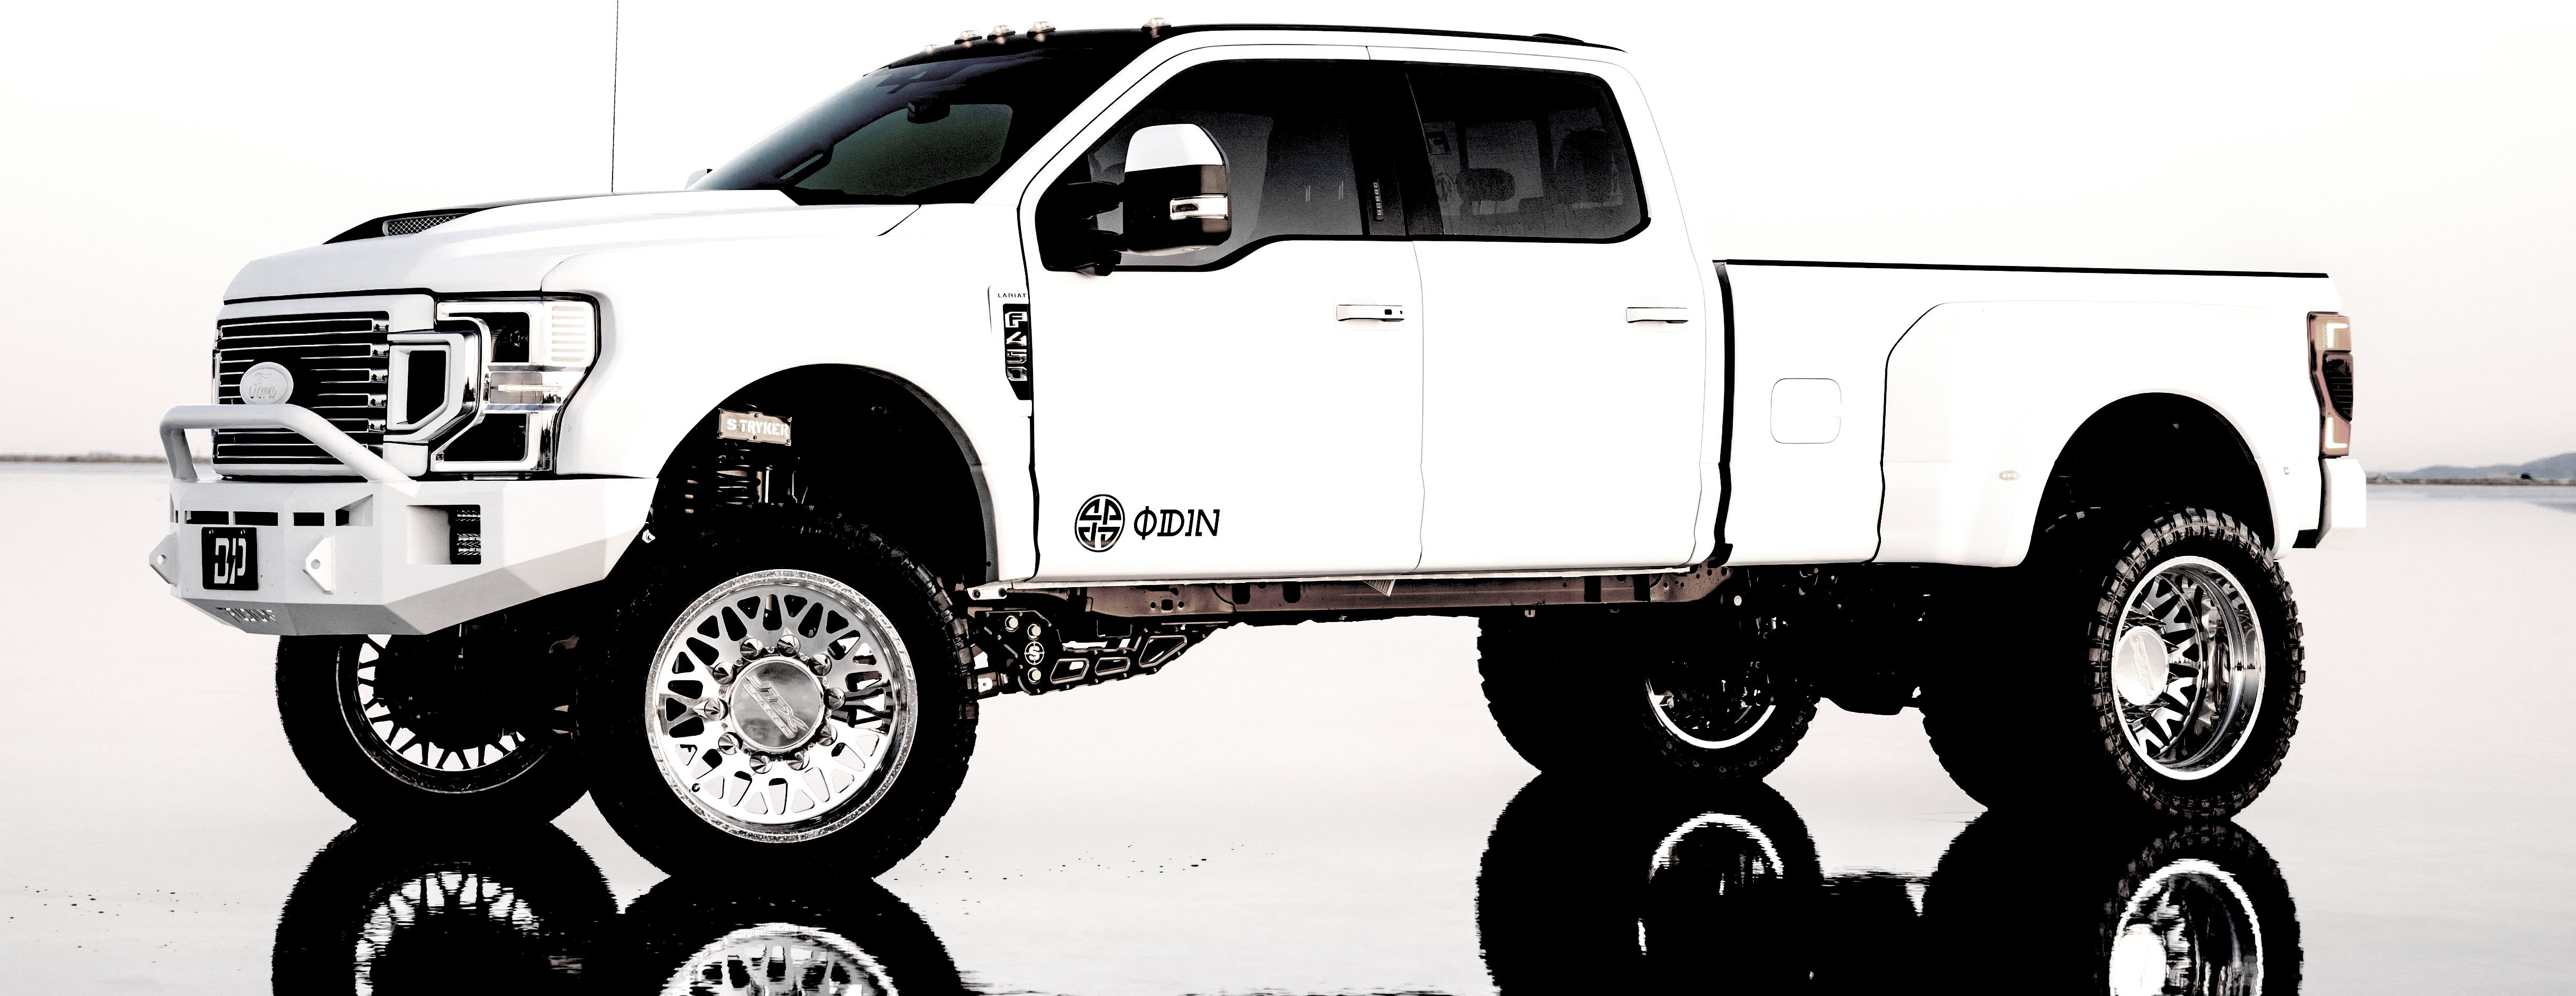 Diesel Brothers 2021 F450 Odin Build with Stryker 4 Link